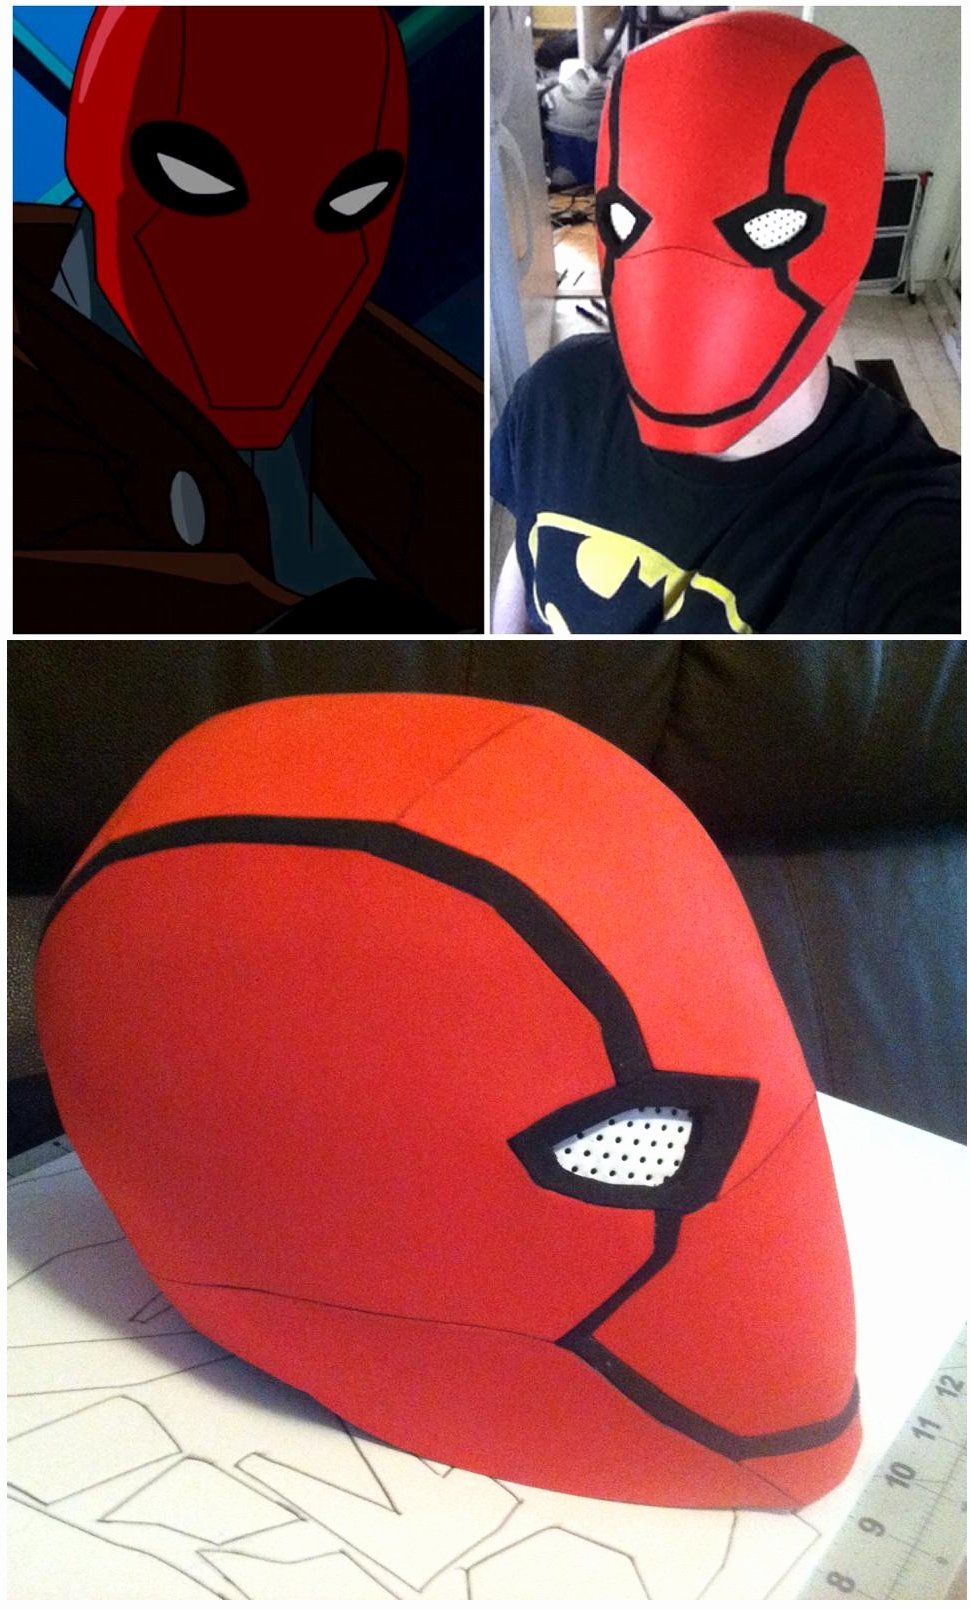 Red Hood Helmet by N8s On Deviantart